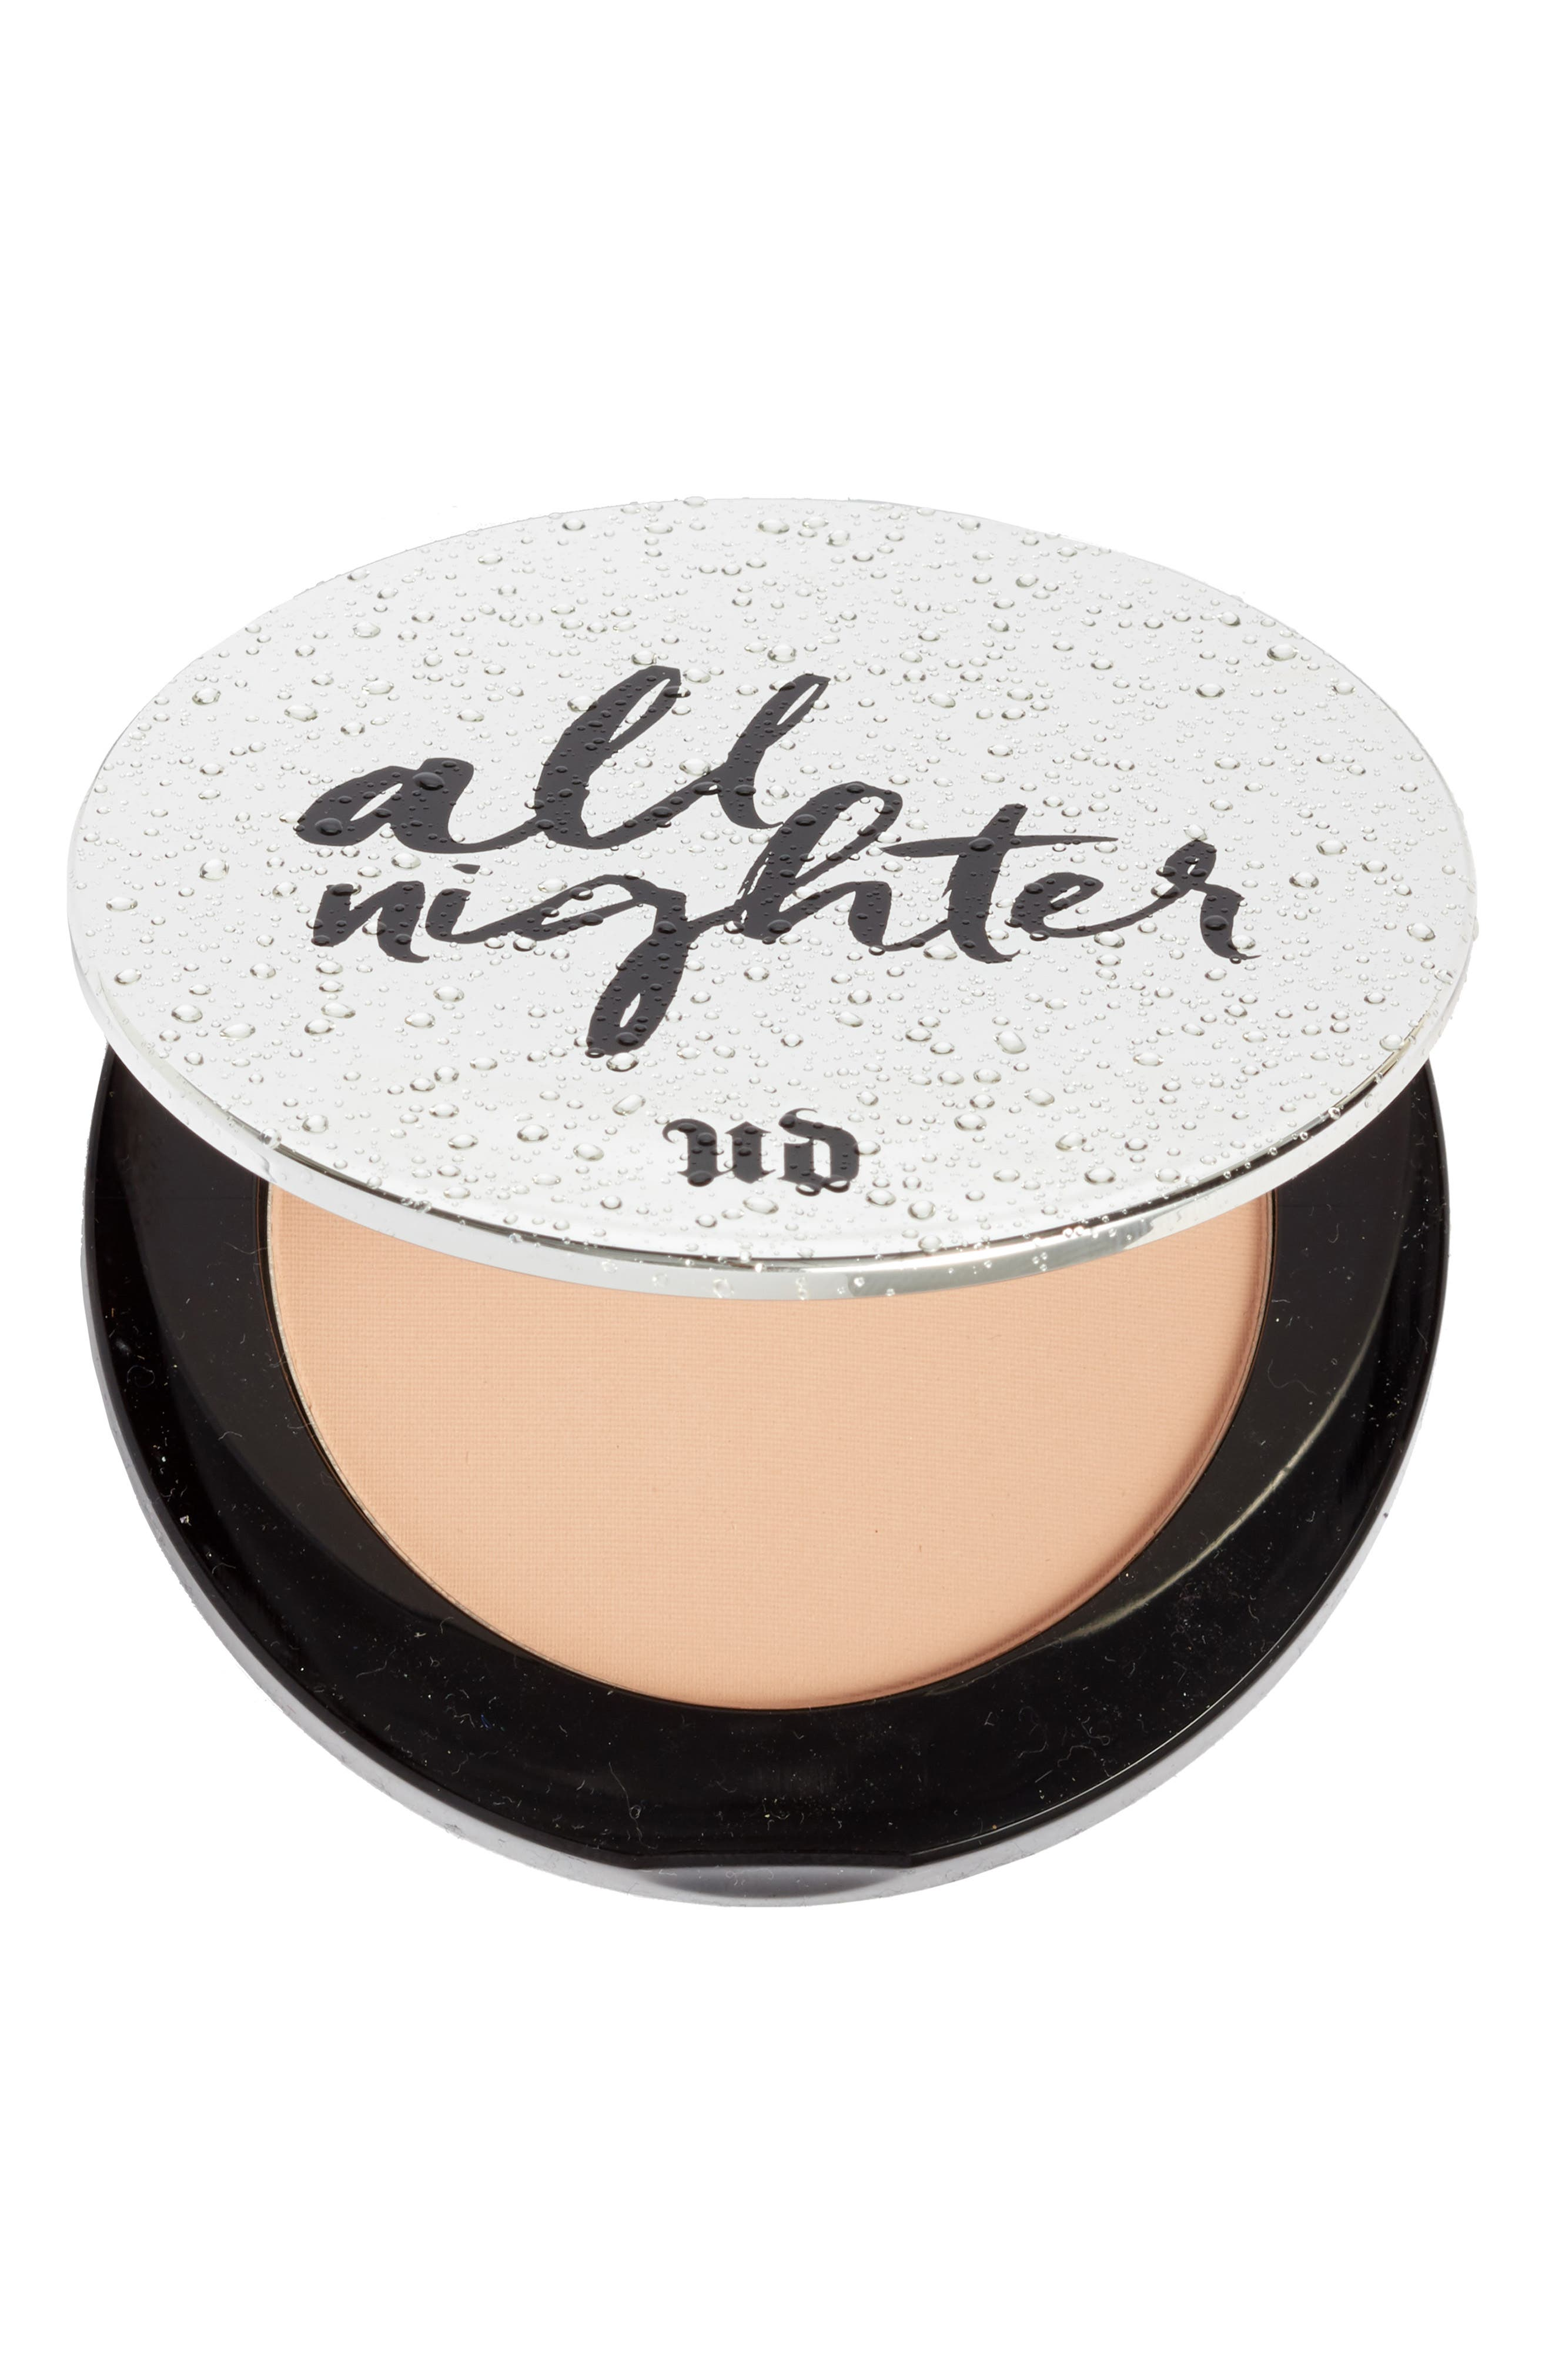 All Nighter Waterproof Setting Powder,                         Main,                         color,